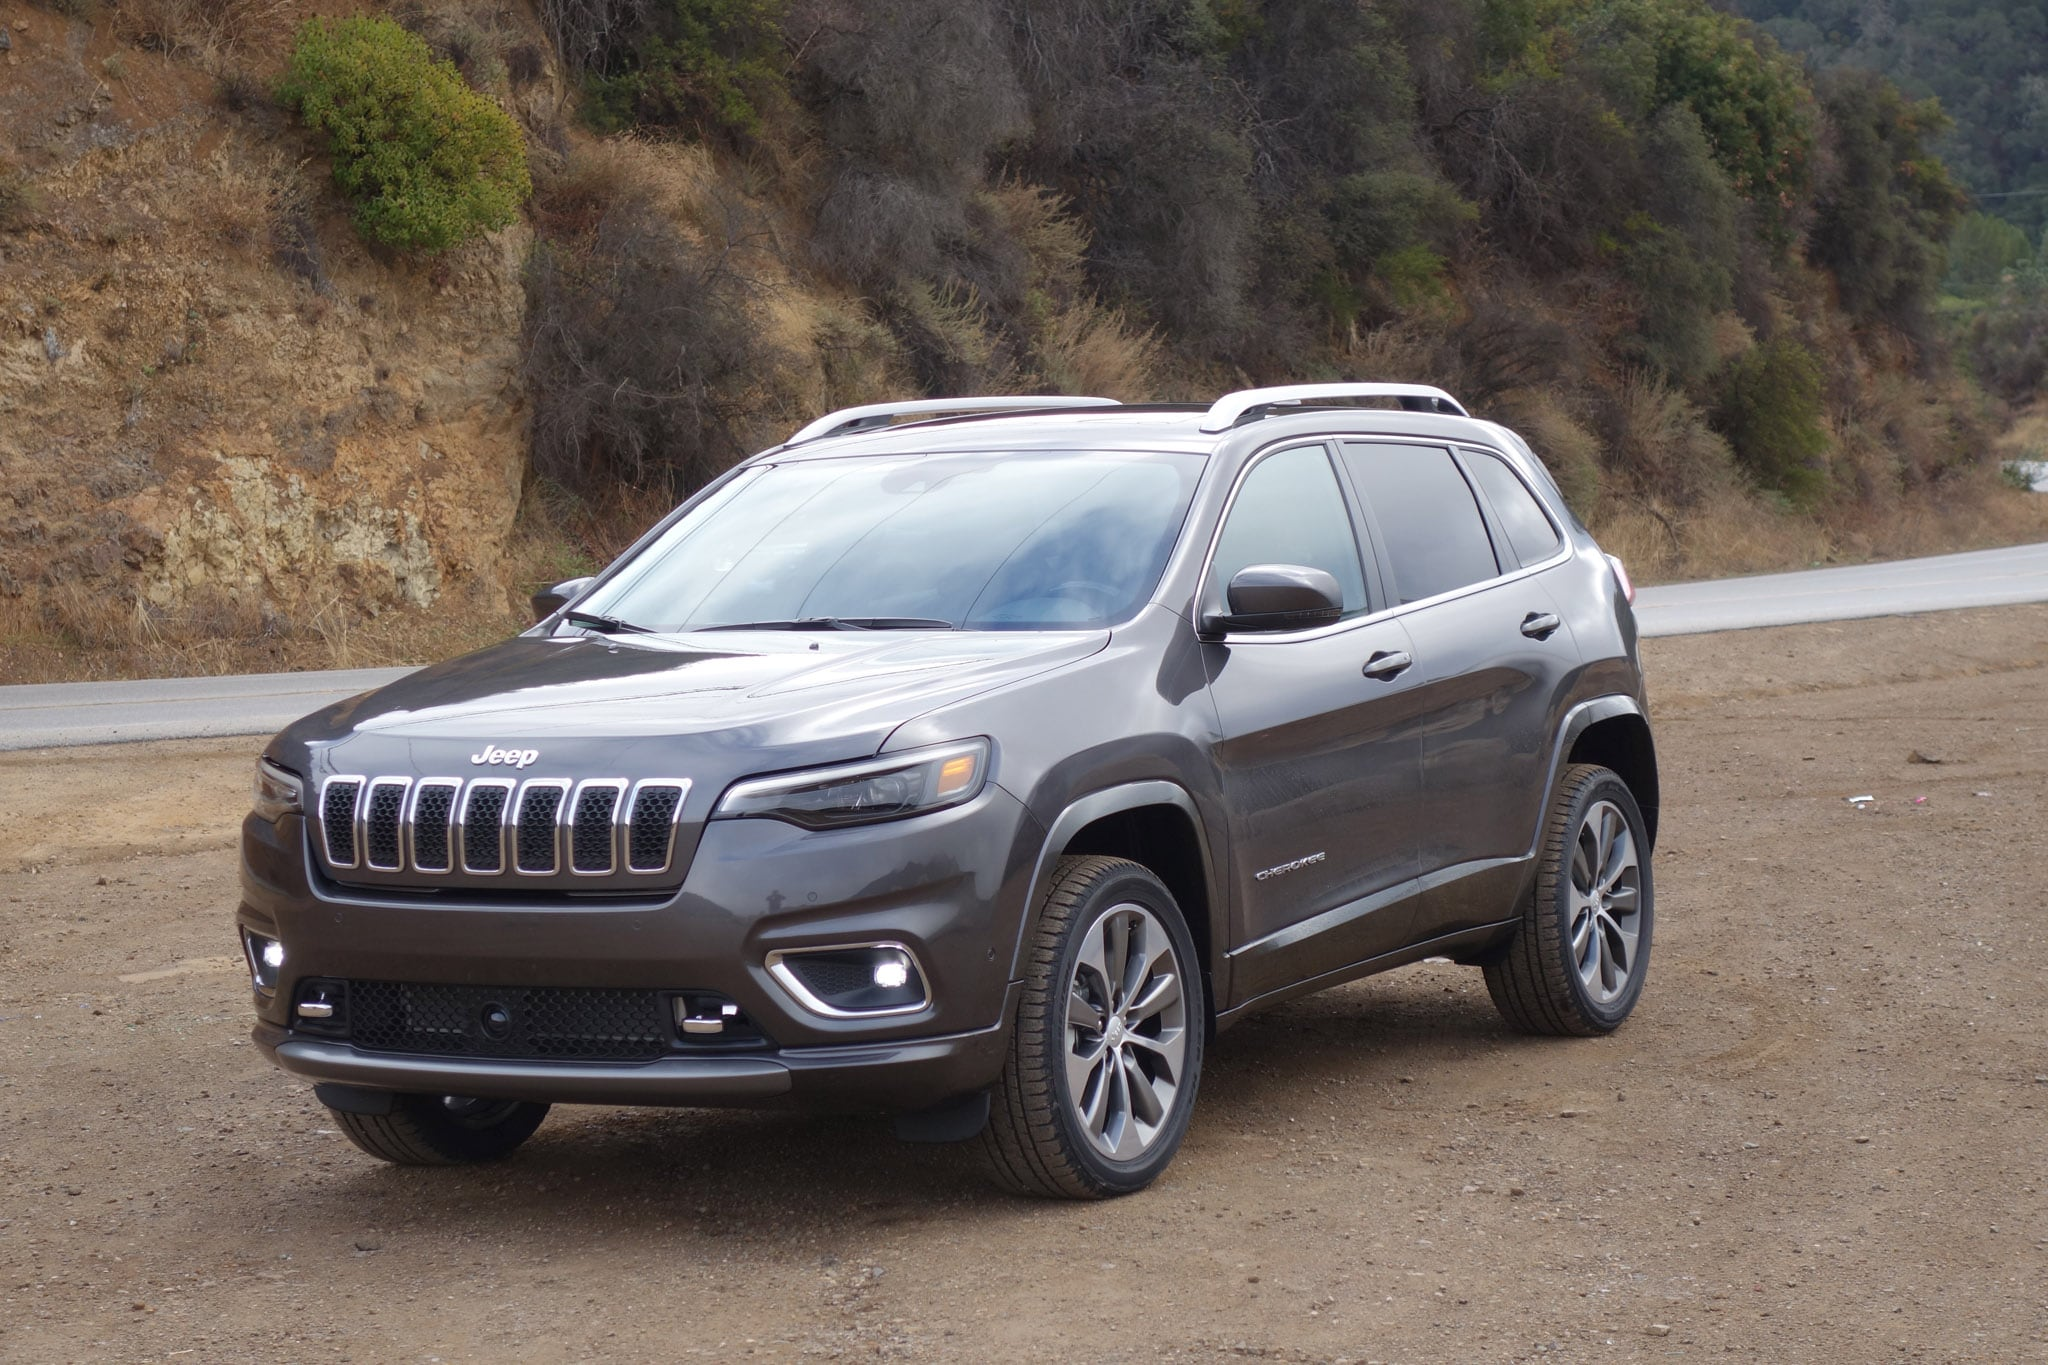 new offers jeep leases prices boston ma and lease main patriot vehicles near best